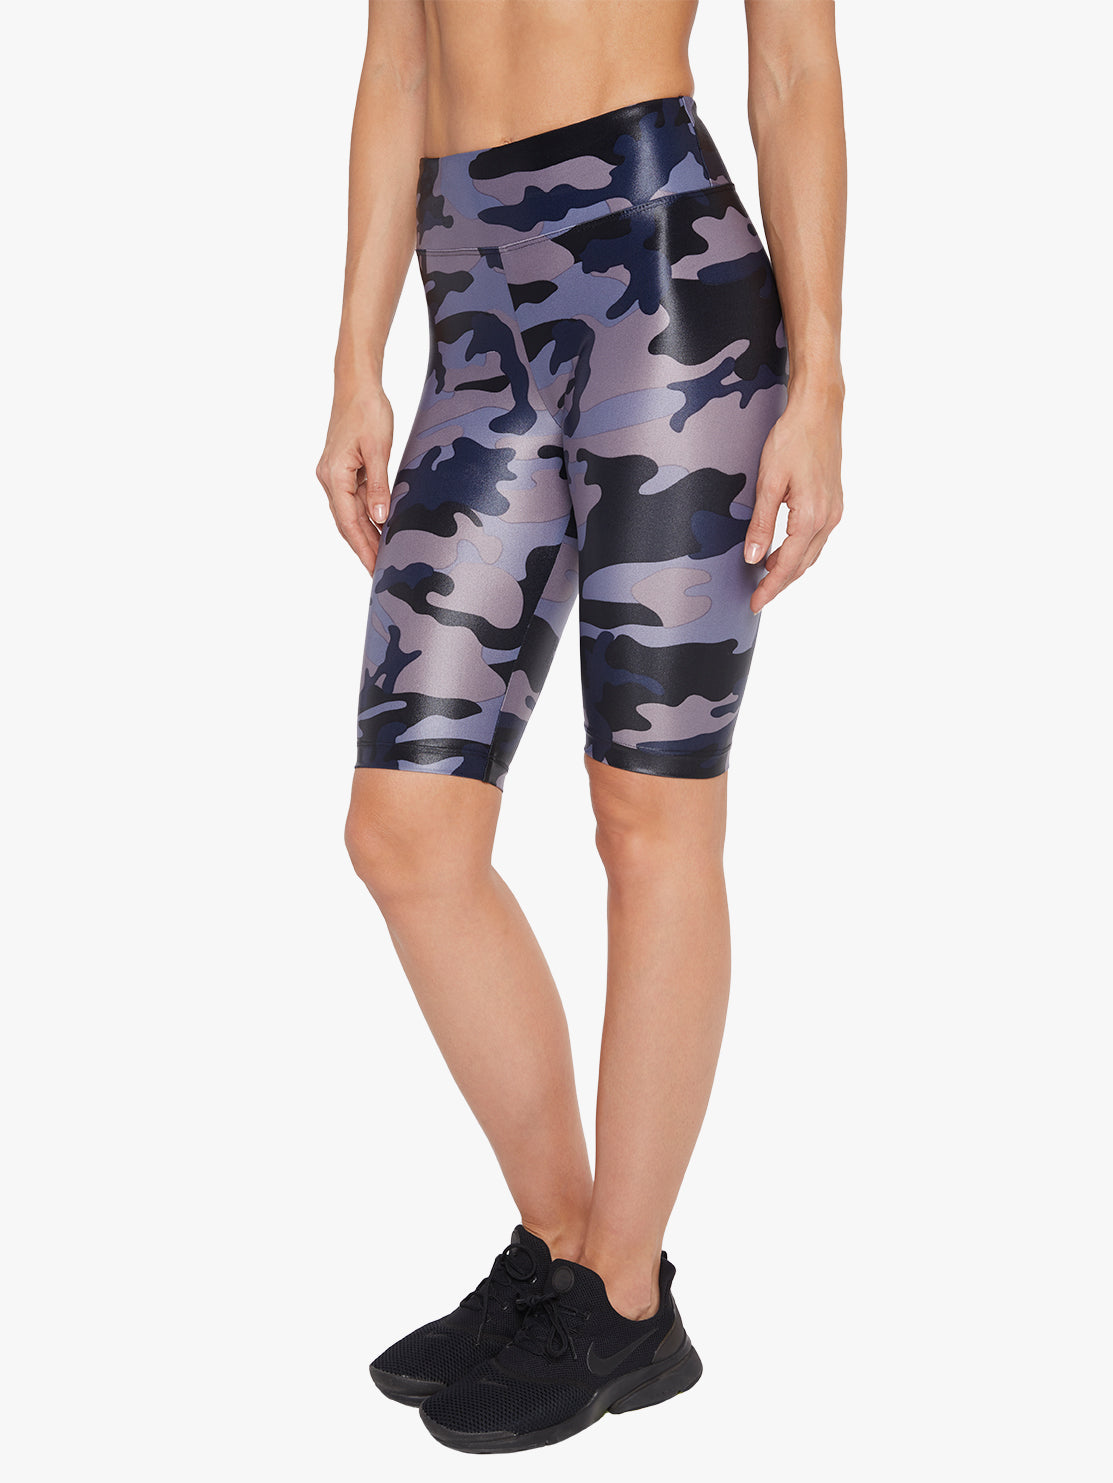 Densonic High Rise Infinity Short - Midnight Blue/Camo